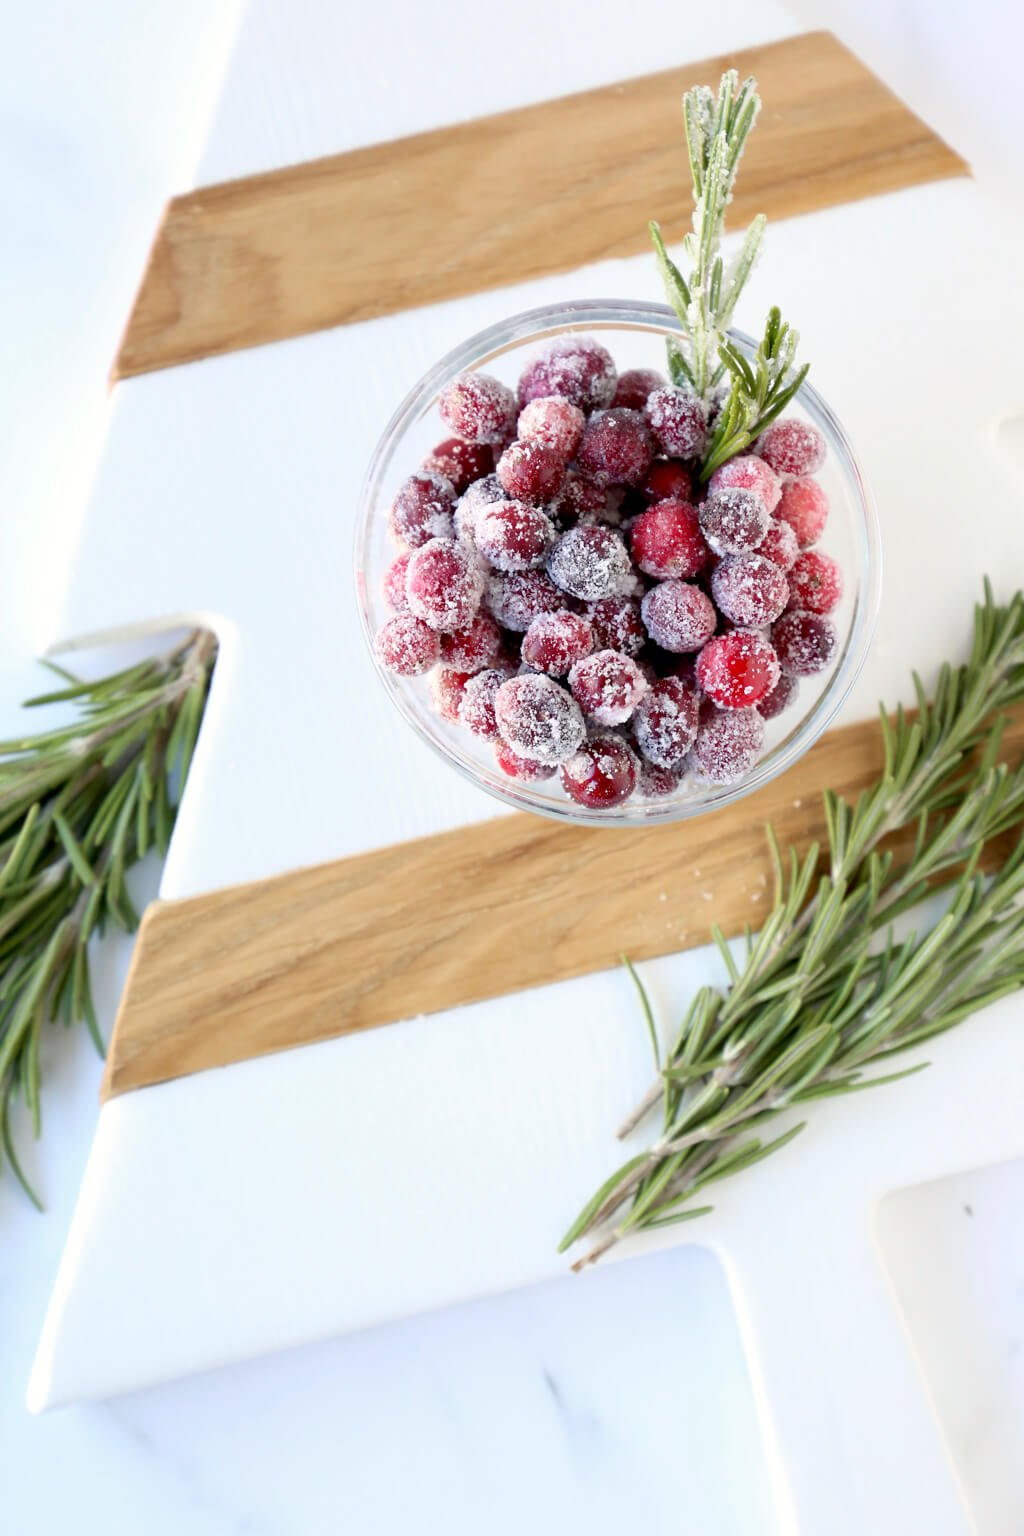 an overhead view of a bowl of sugared cranberries surrounded by rosemary sprigs